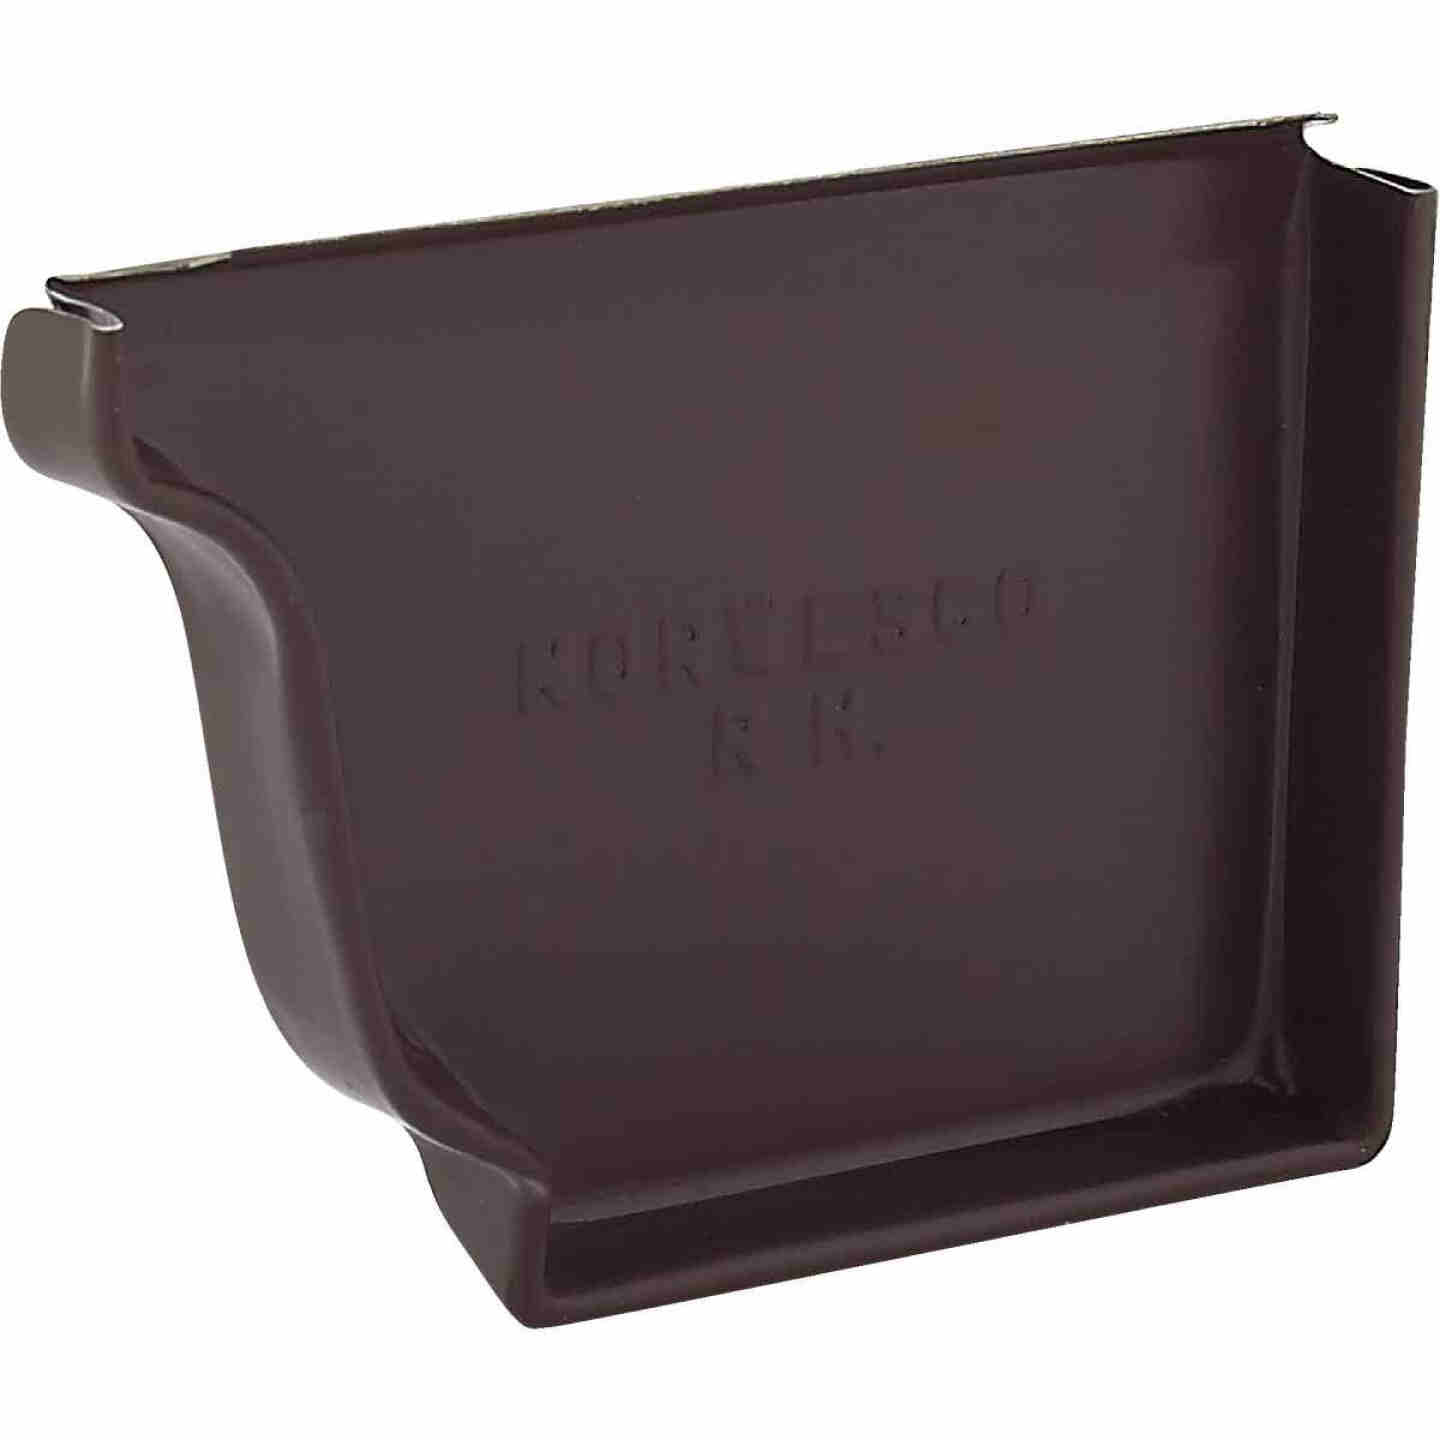 NorWesco 4 In. Galvanized Brown Right Gutter End Cap Image 1